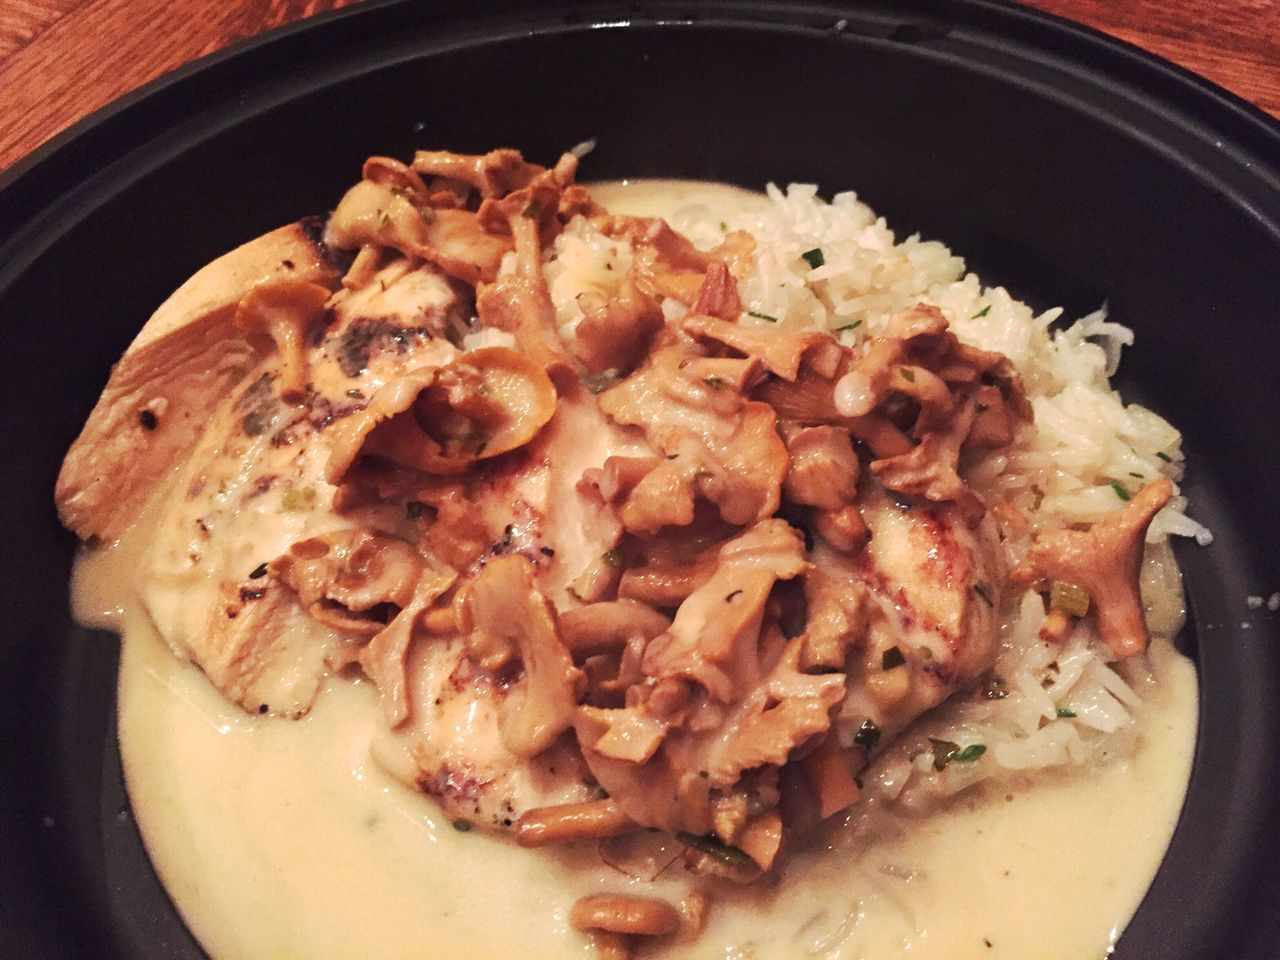 Food Chantrelles Mushrooms Buerre Blanc Grilled Chicken Basmati Rice Basmati Basmatirice Foraged Local Delicious IPhoneography